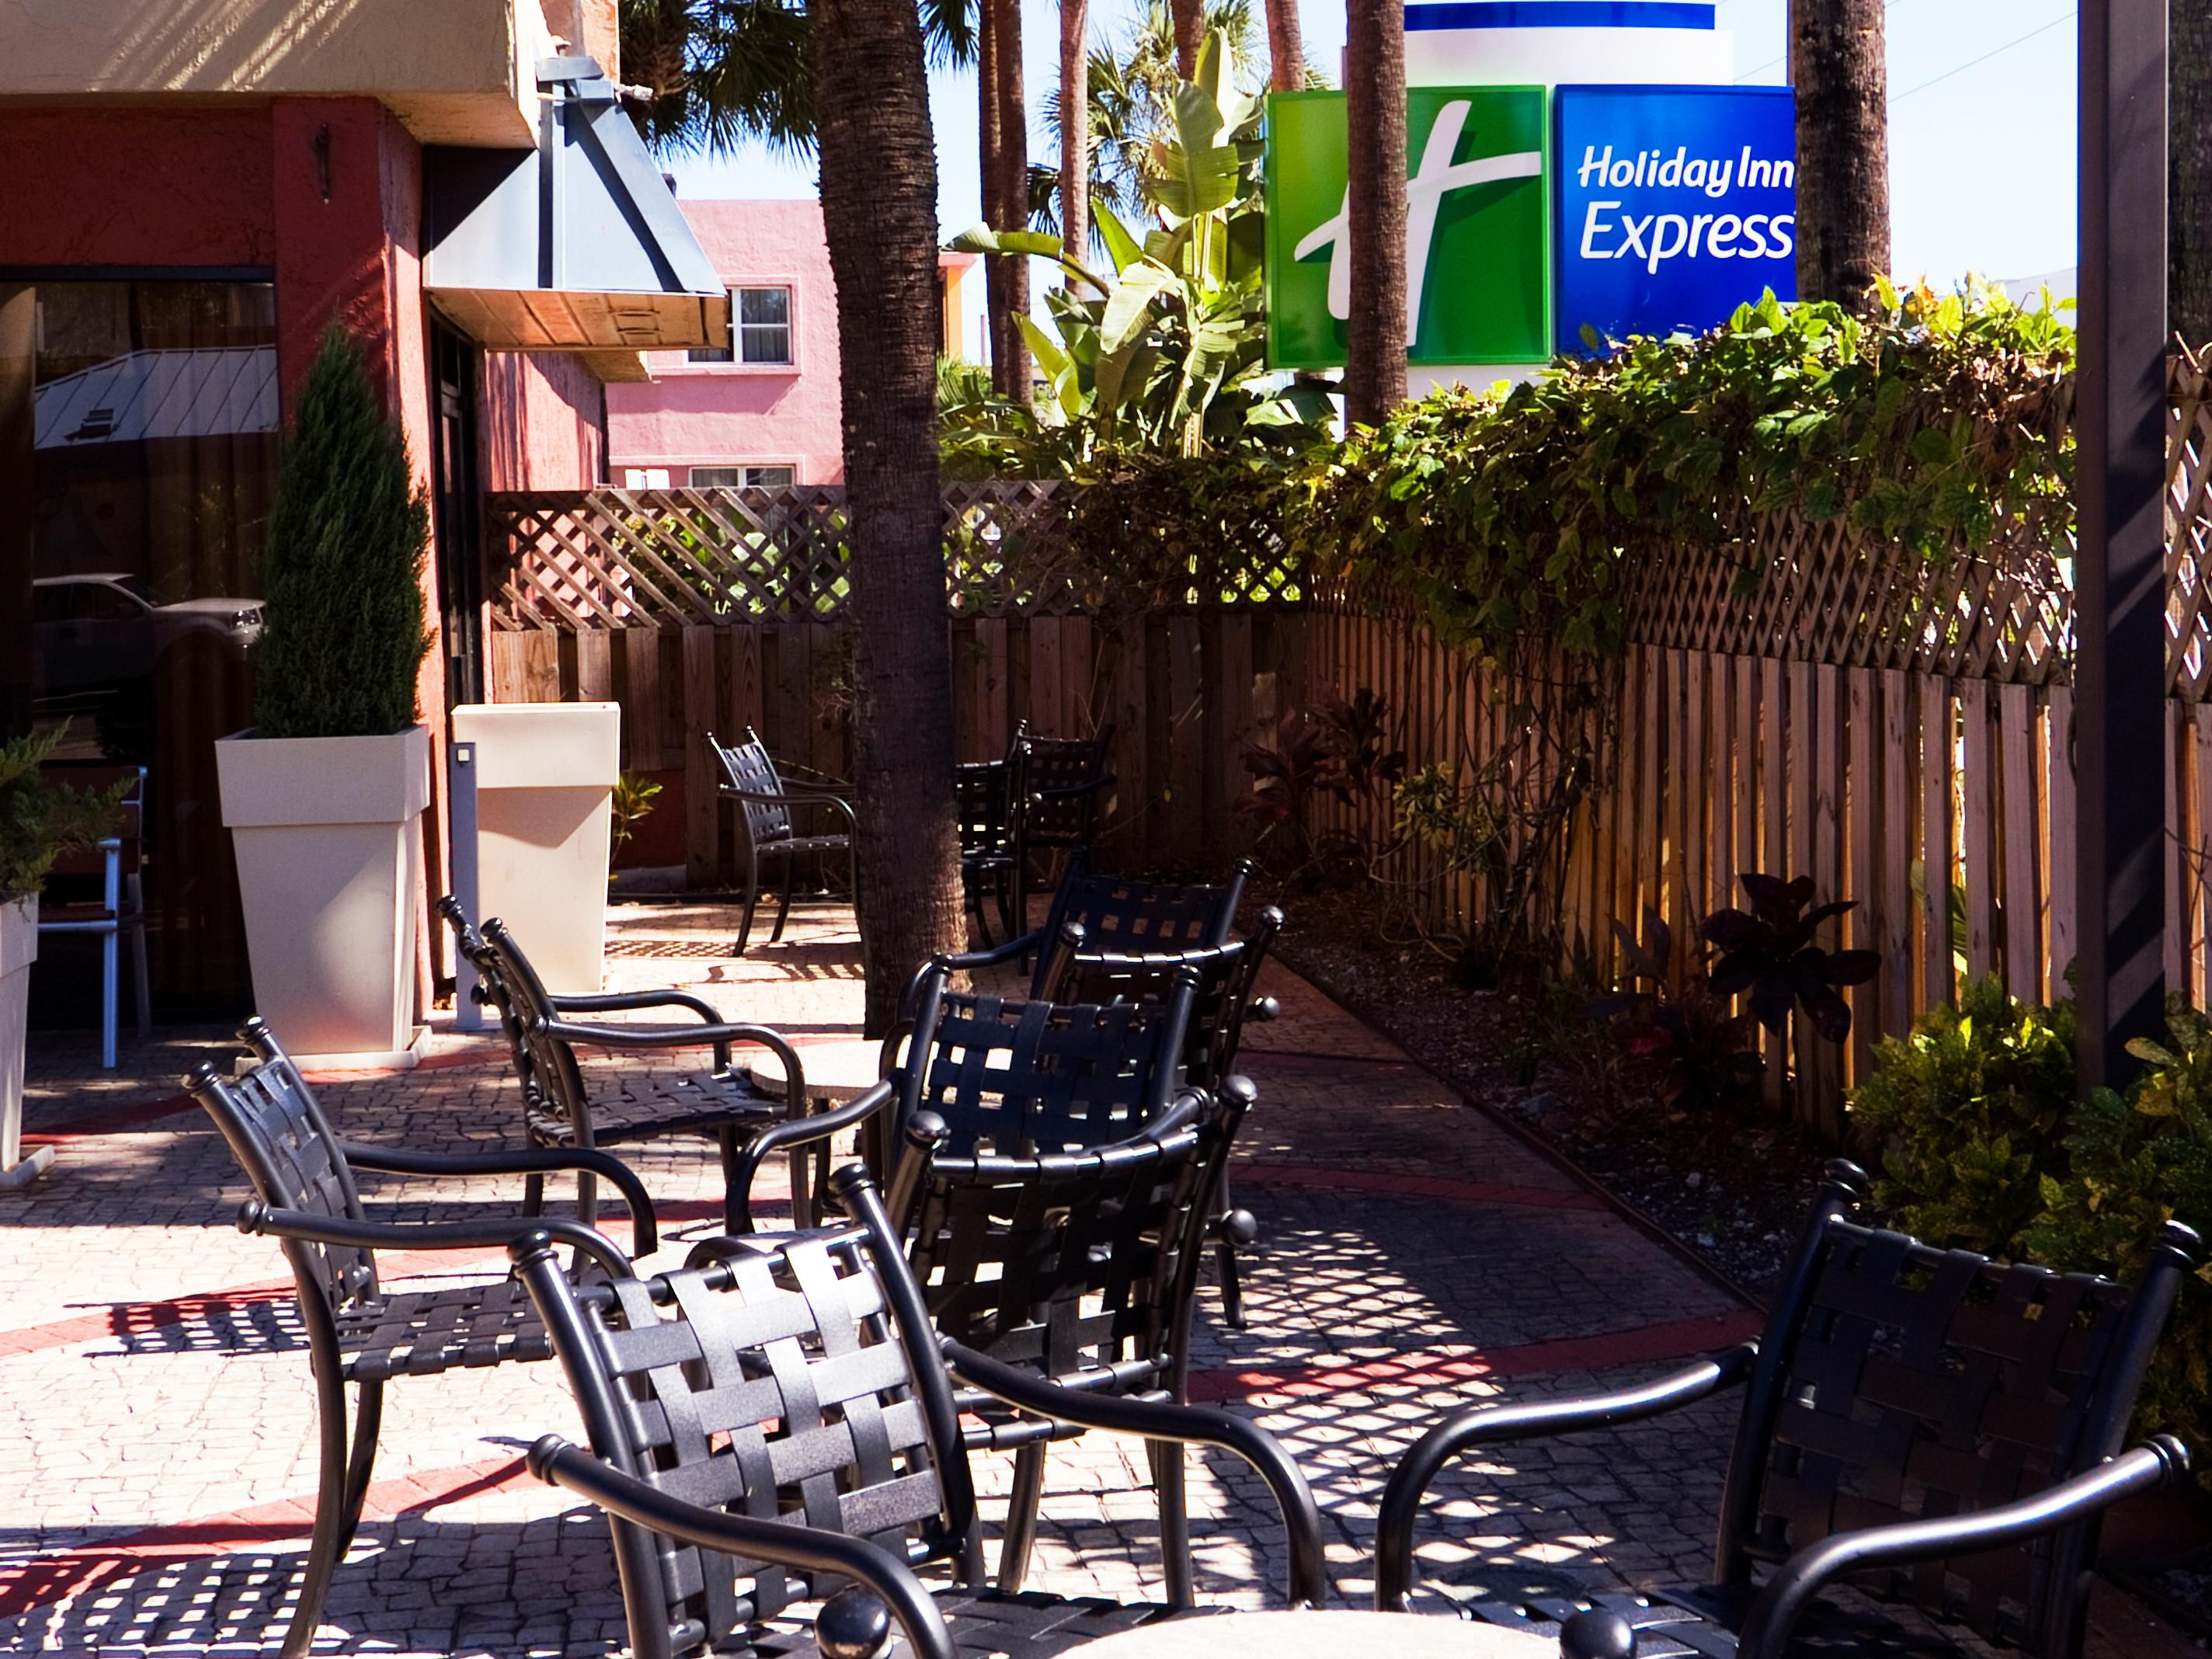 Holiday Inn Express Outdoor Seating Patio Courtyard